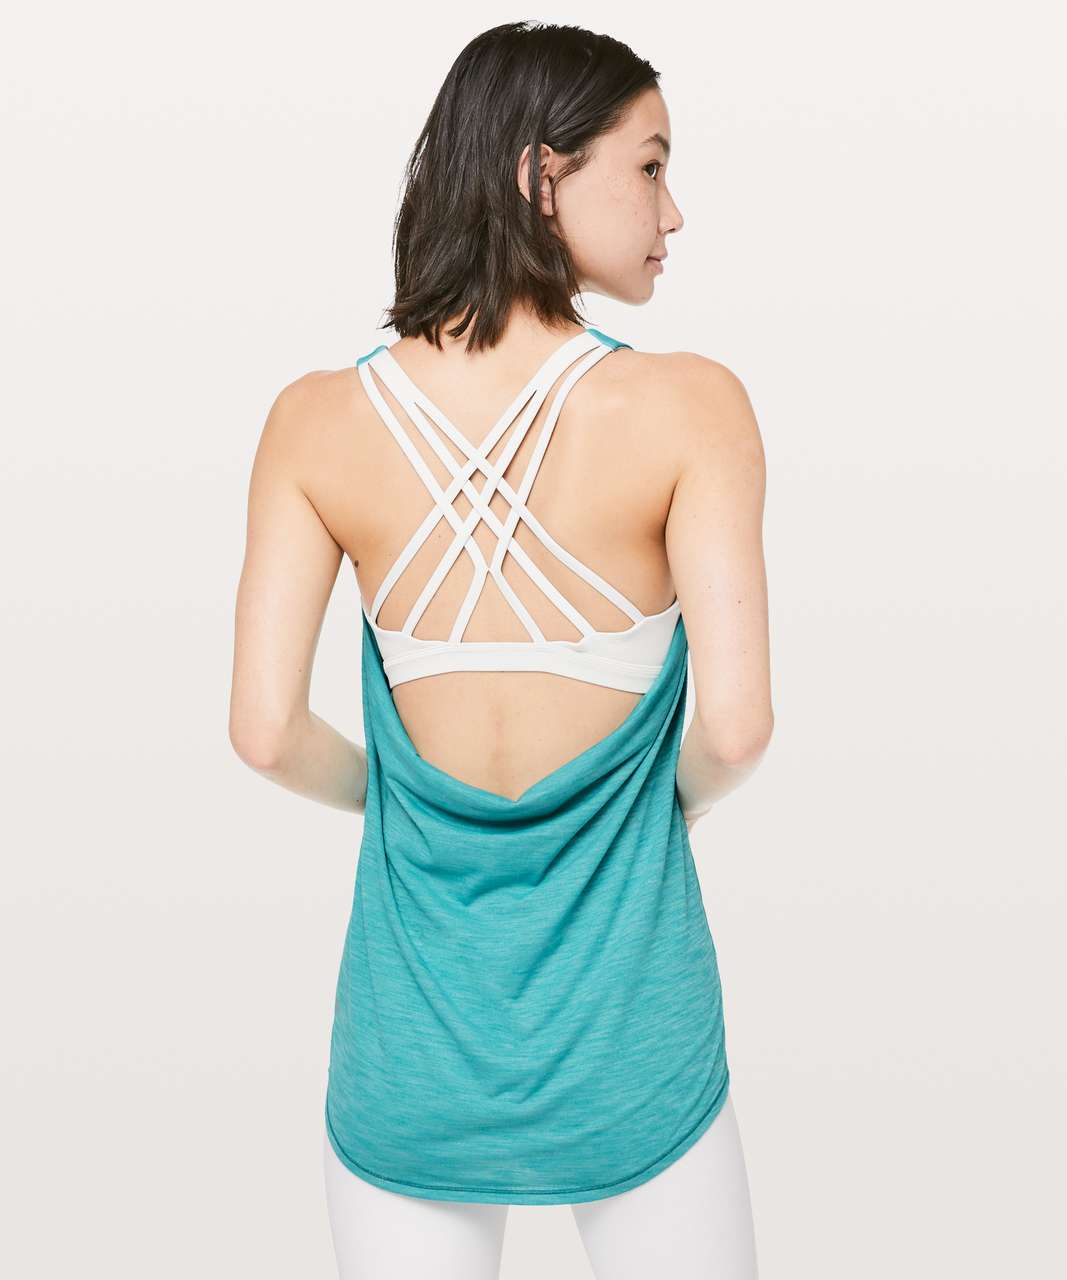 Lululemon Slay The Studio 2-In-1 Tank *Medium Support B/C Cup - Heathered Amazonite / Ocean Mist